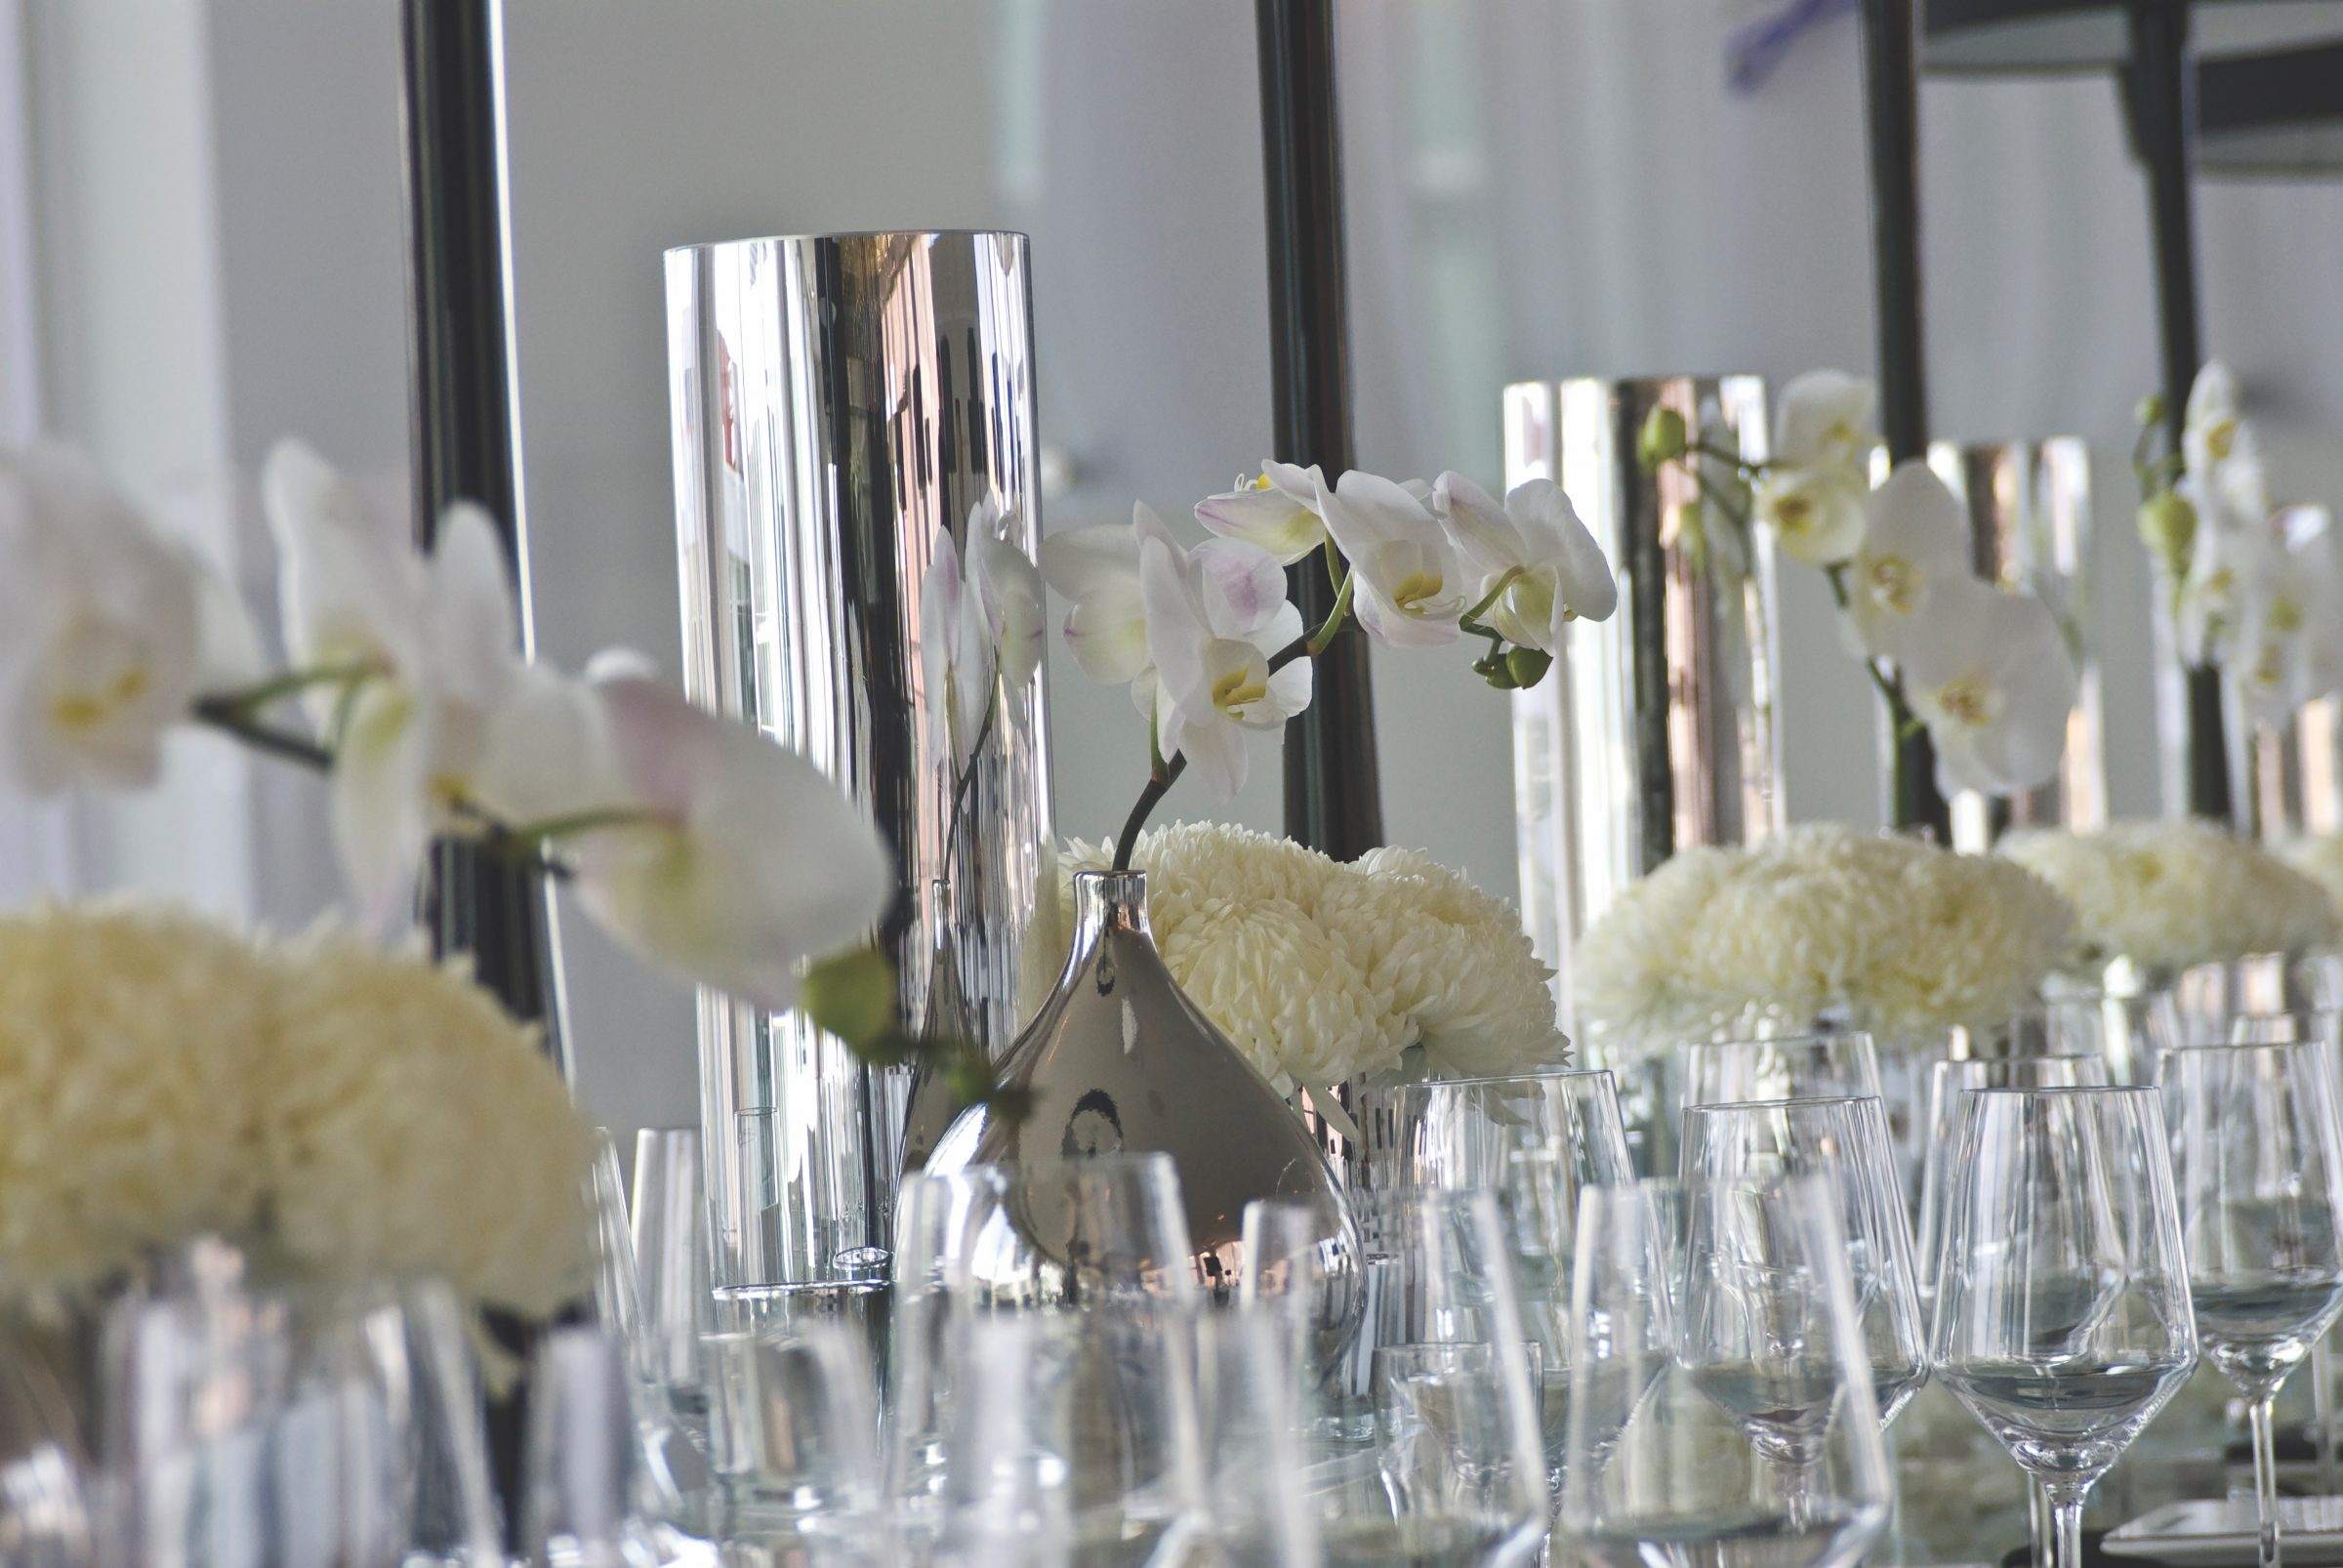 Wedding tabletop with clear glassware and white flowers